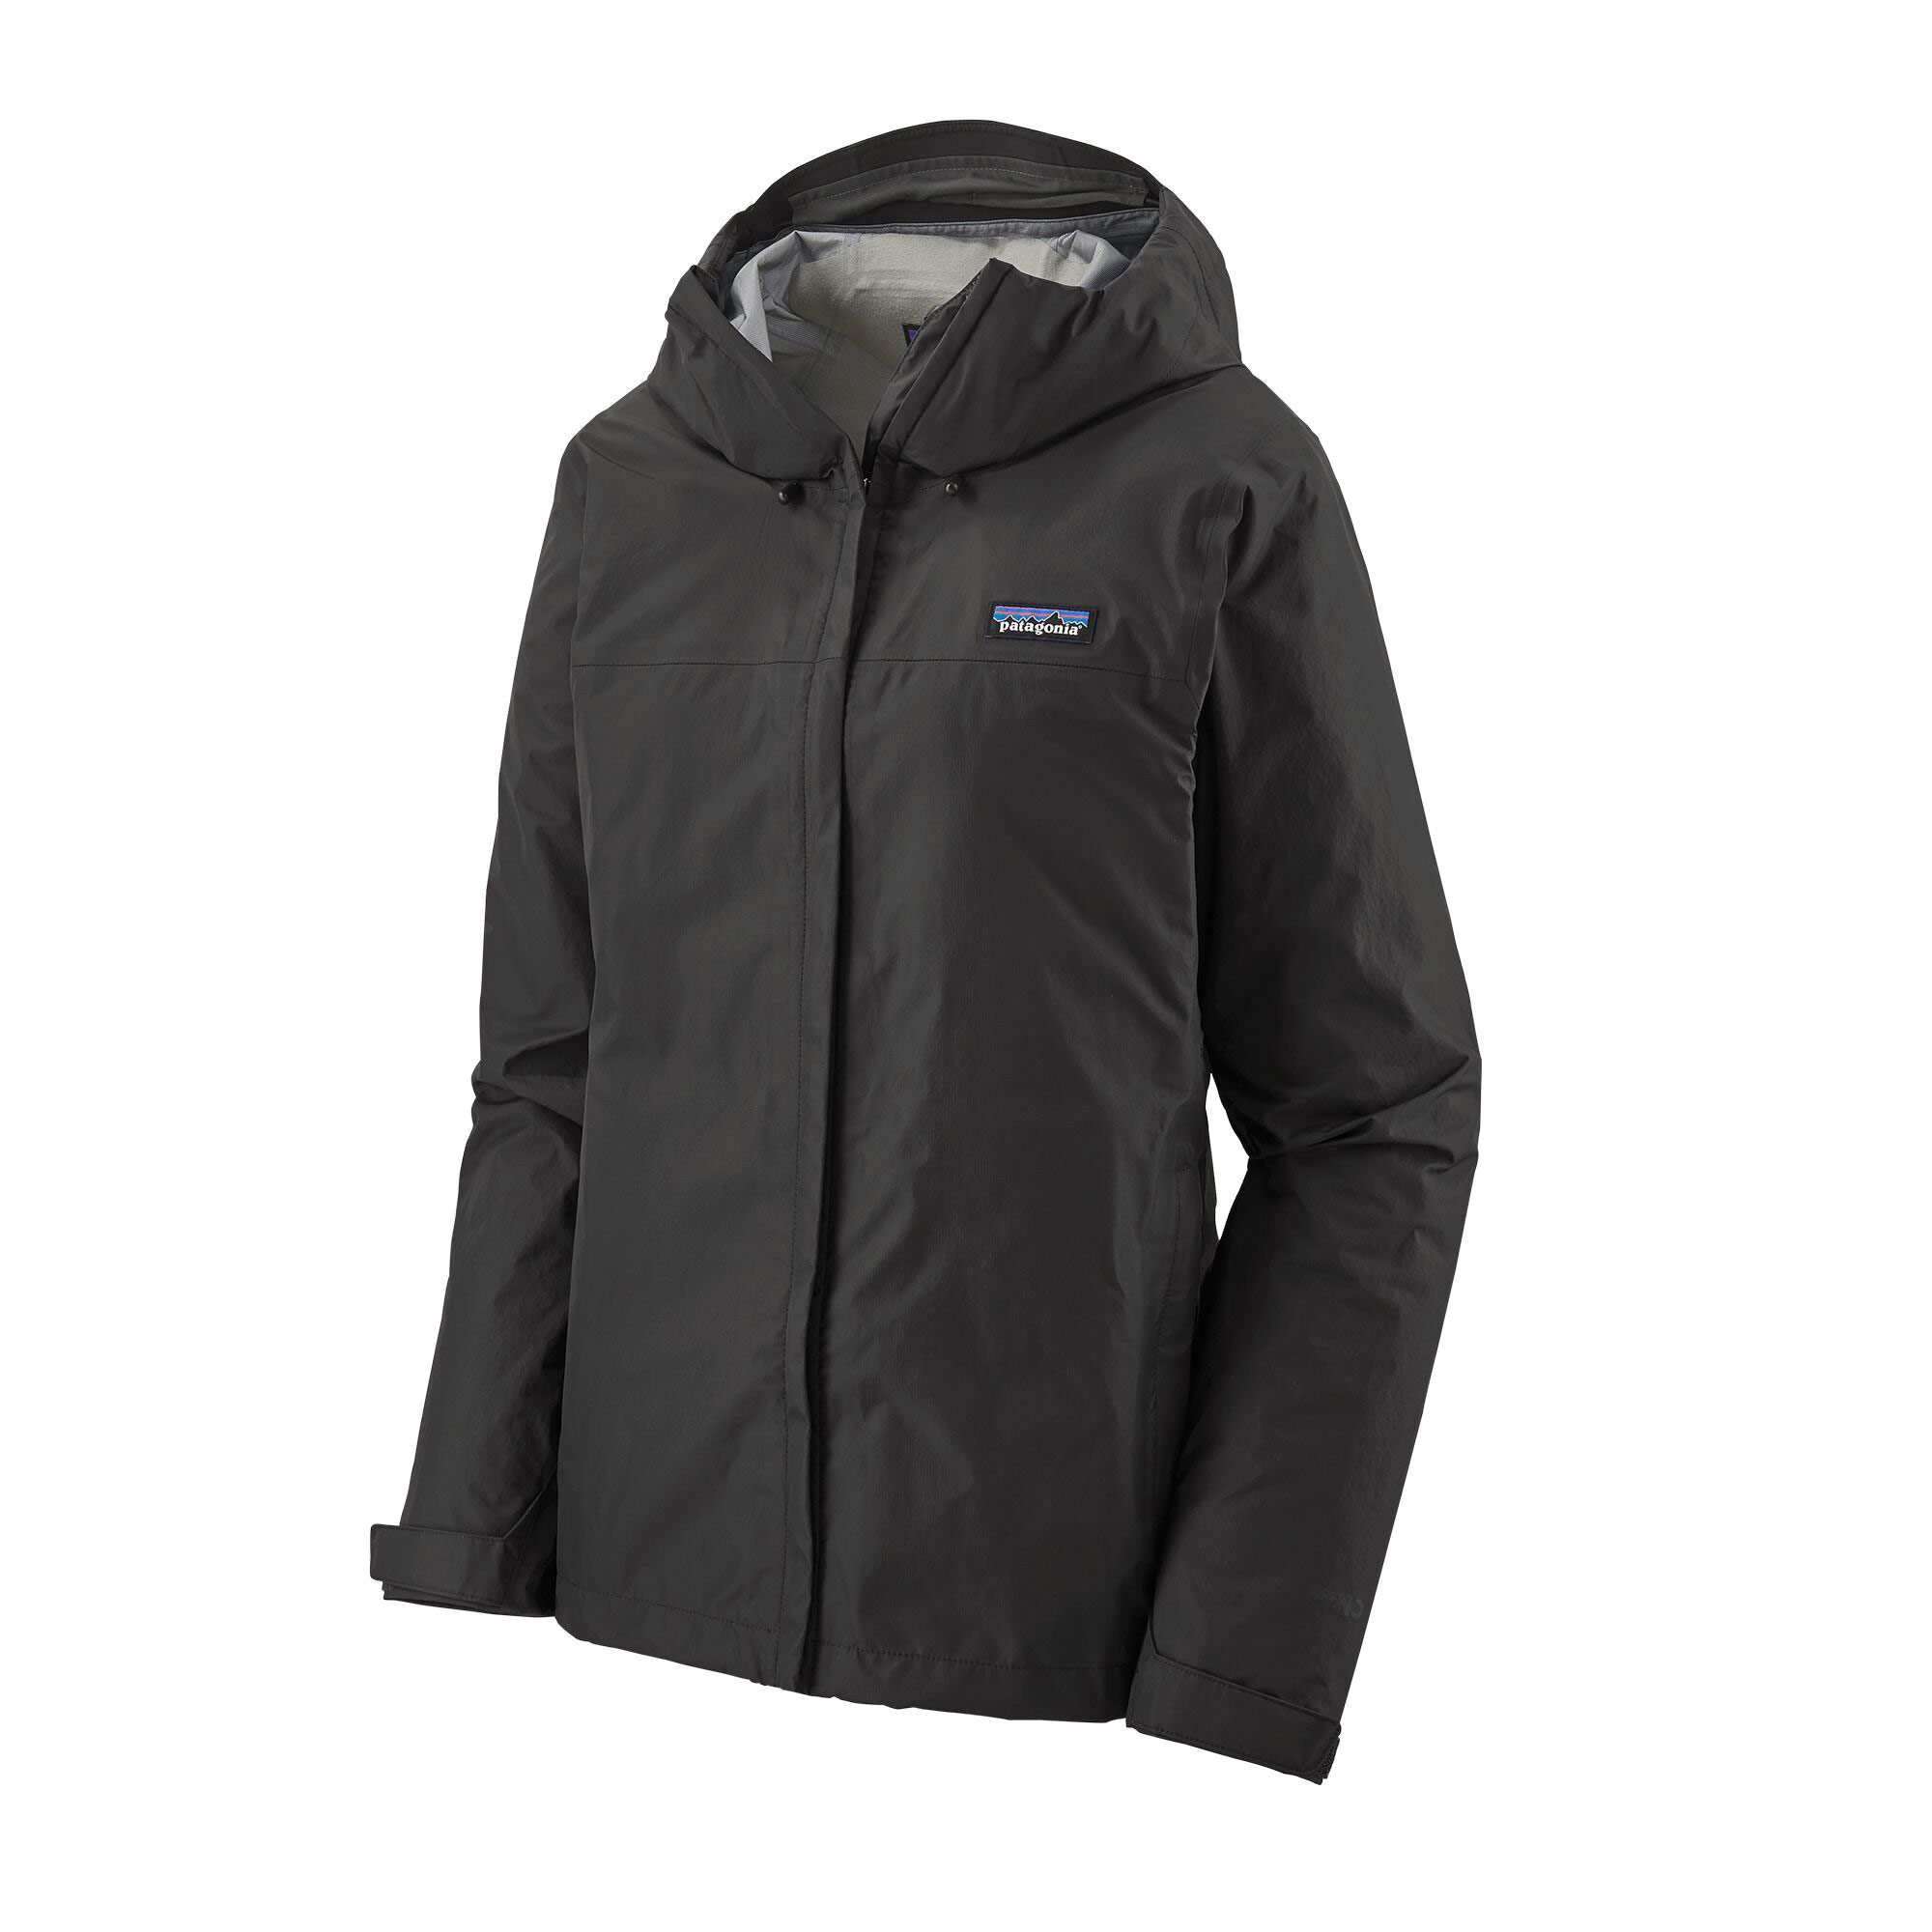 Torrentshell 3L Jacket - Women's